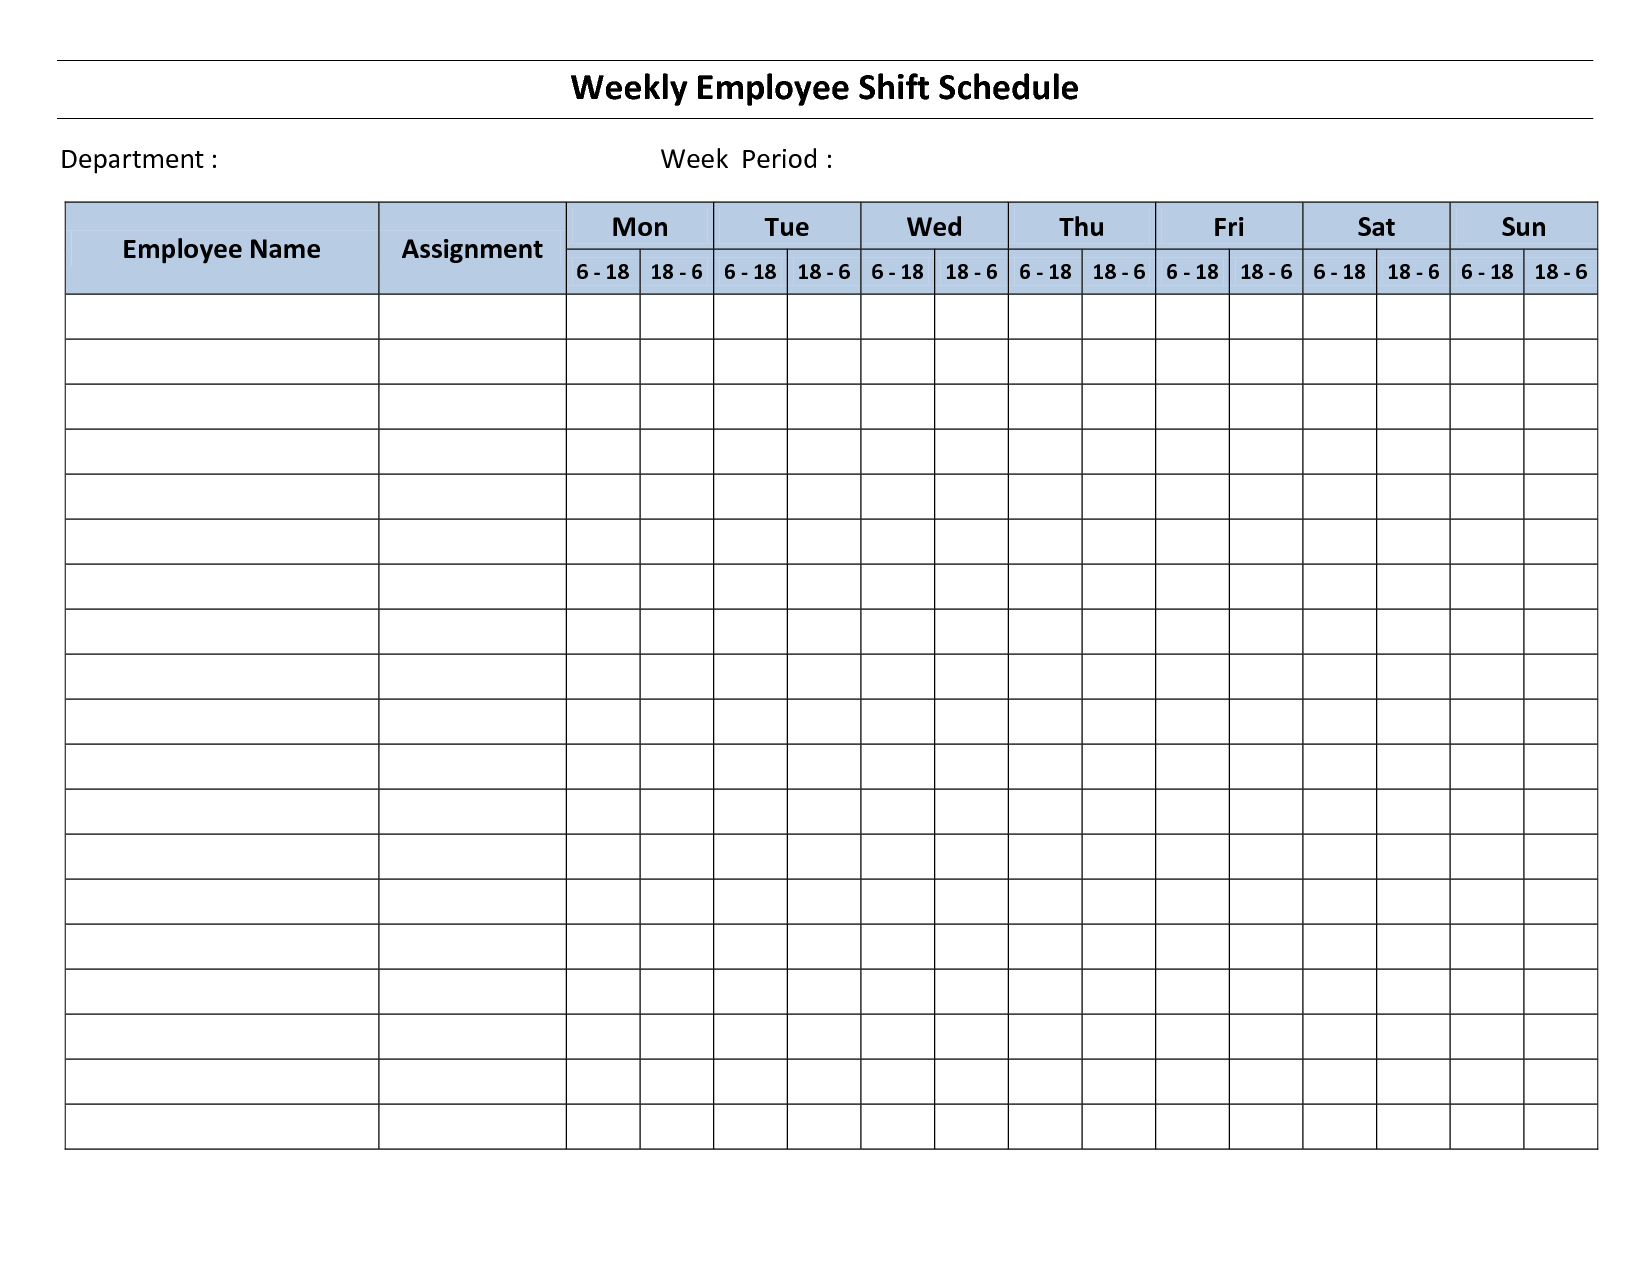 Agenda Meeting Template Word Magnificent Printable Weekly Employee Schedule Template  Wyldewood Op .